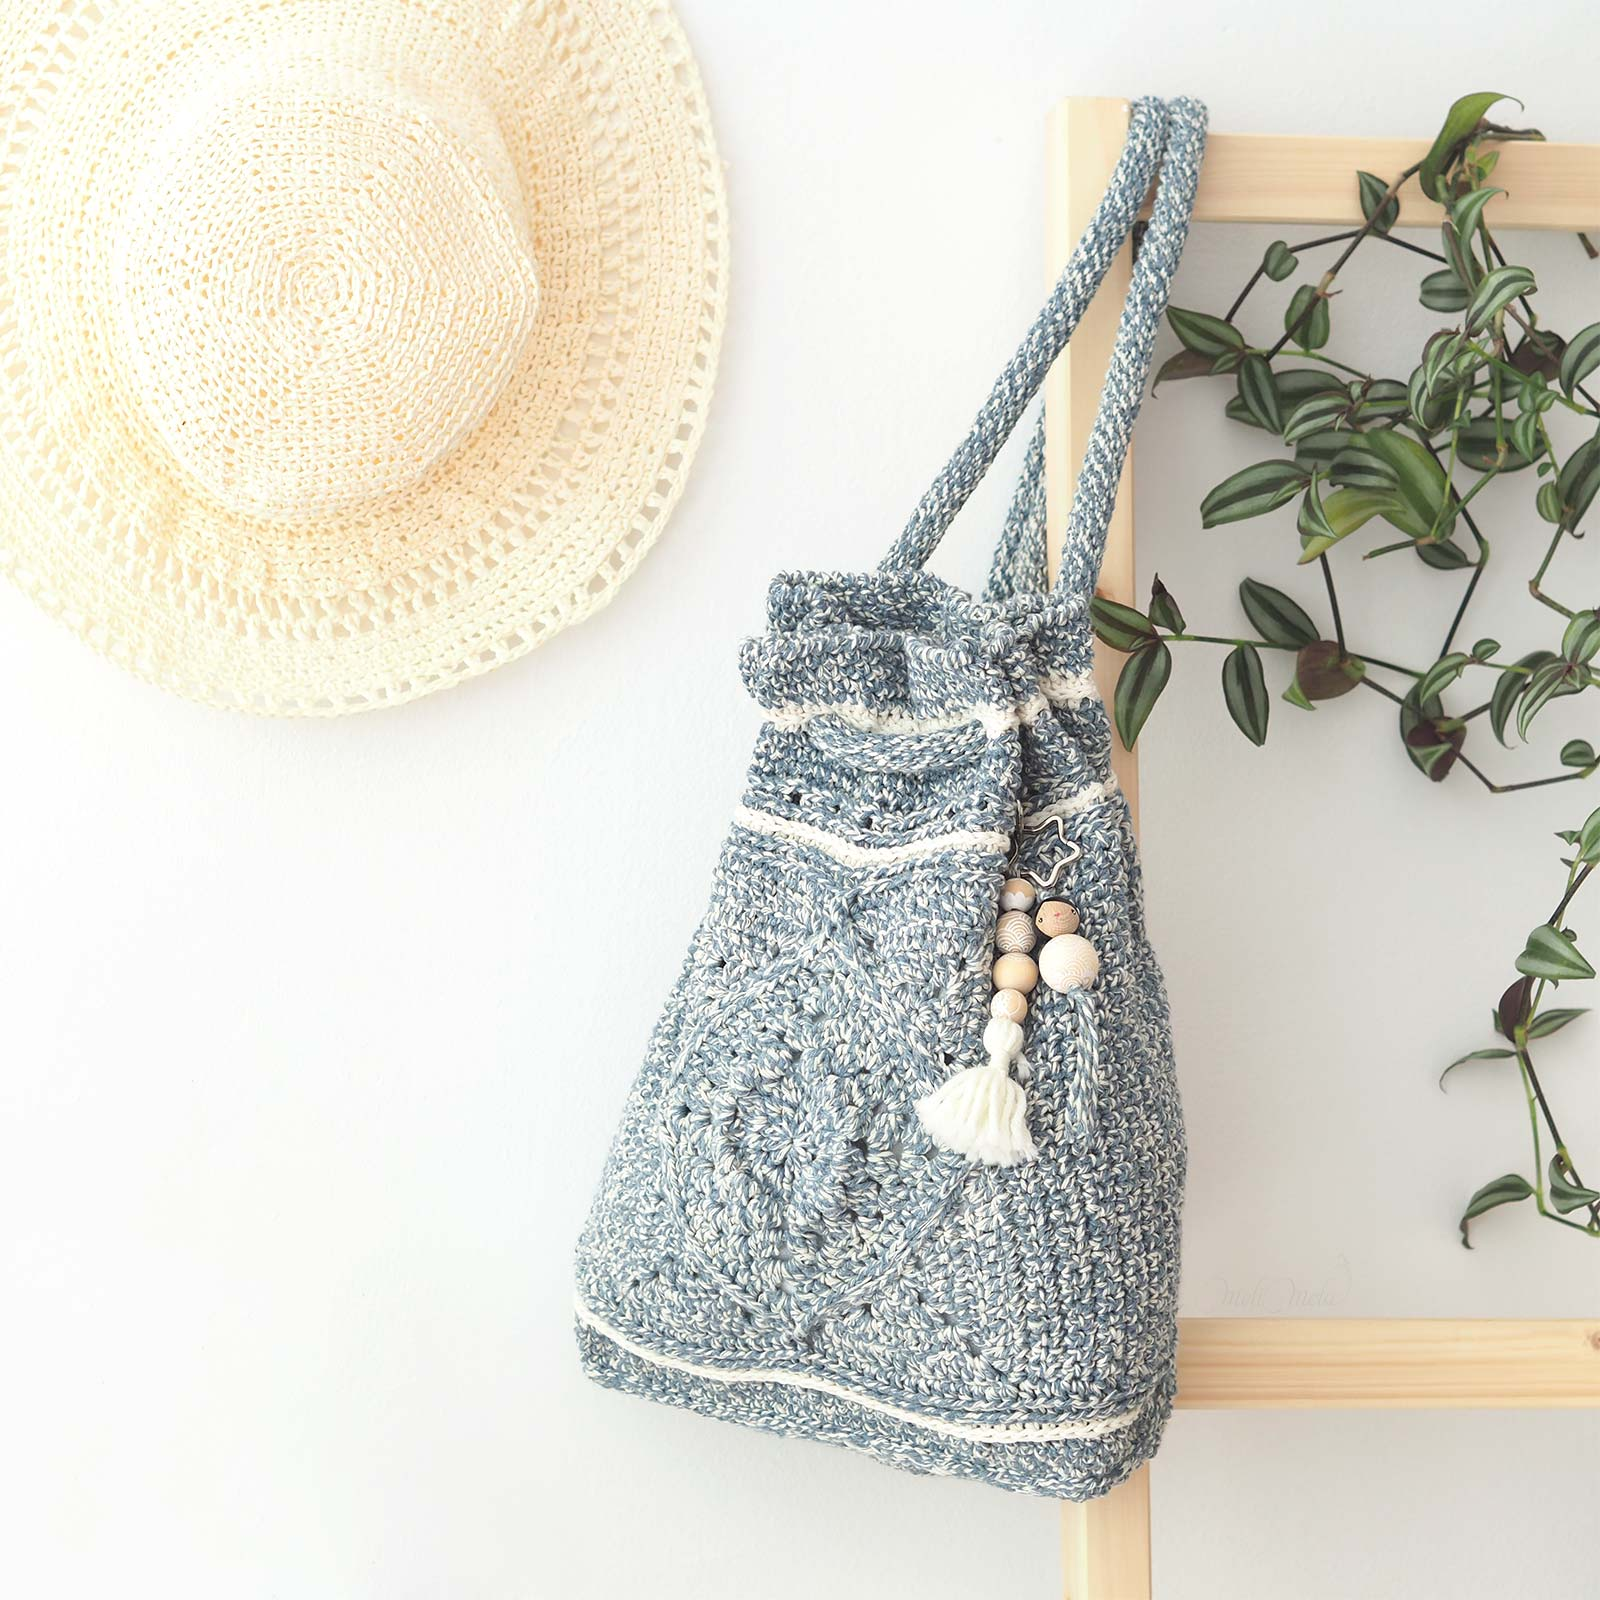 sac à dos Wildrose backpack La Boutique de MeliMelo yarn Billie Jean Wool and the Gang